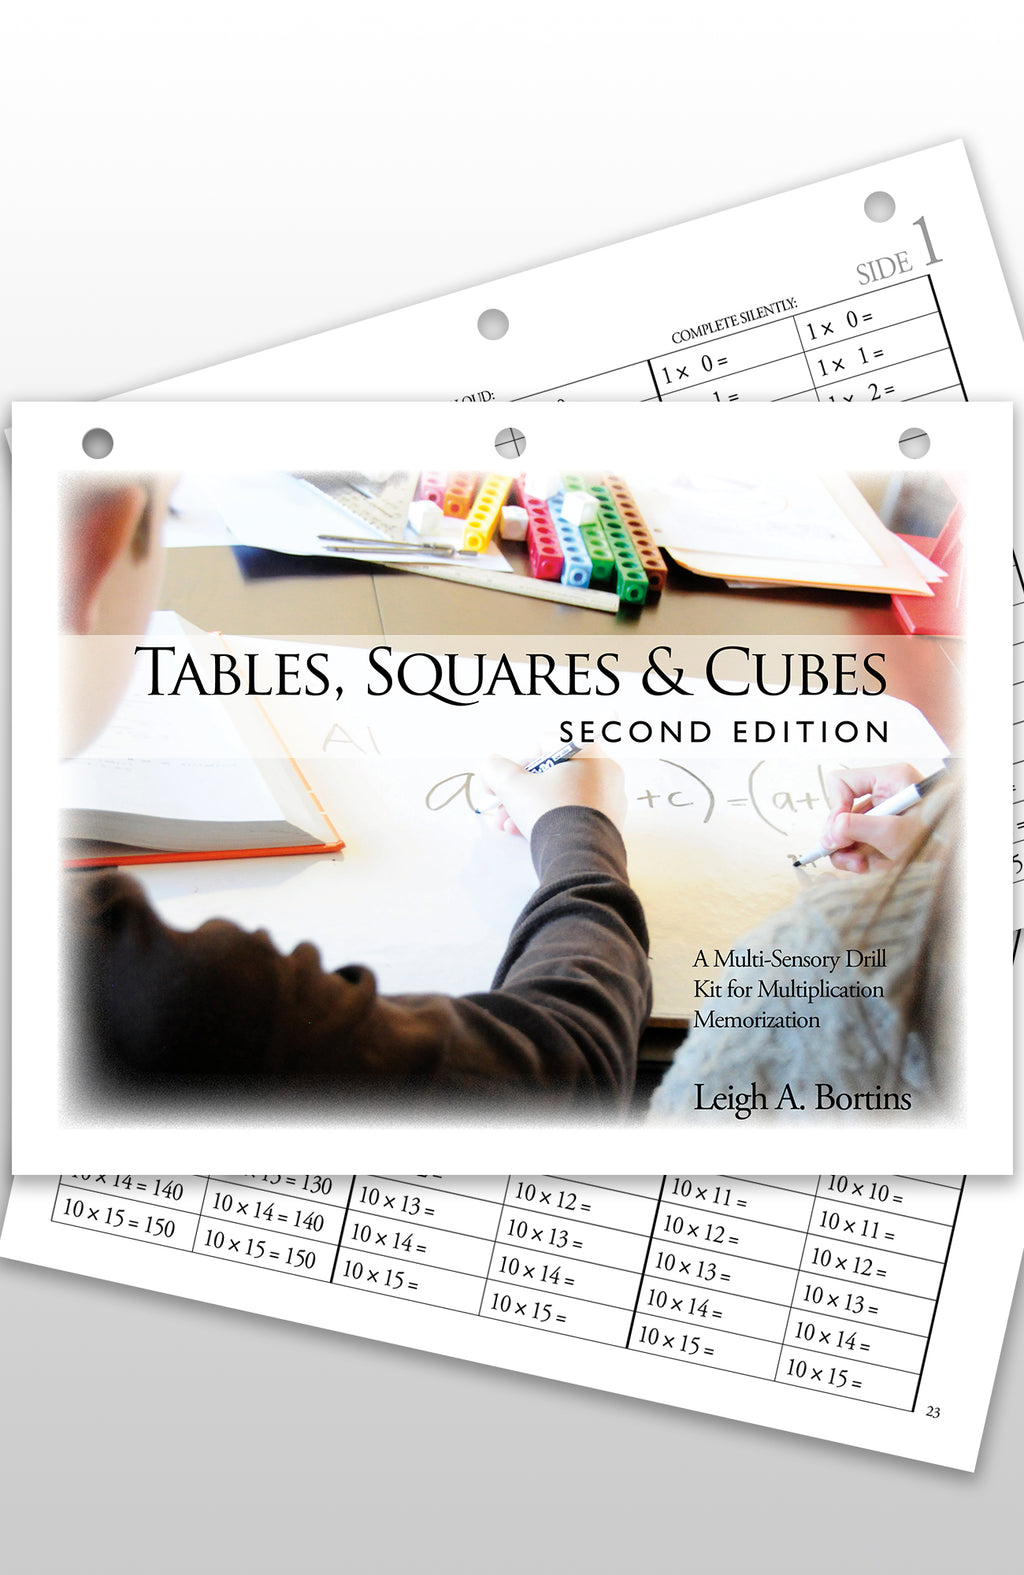 TABLES, SQUARES & CUBES